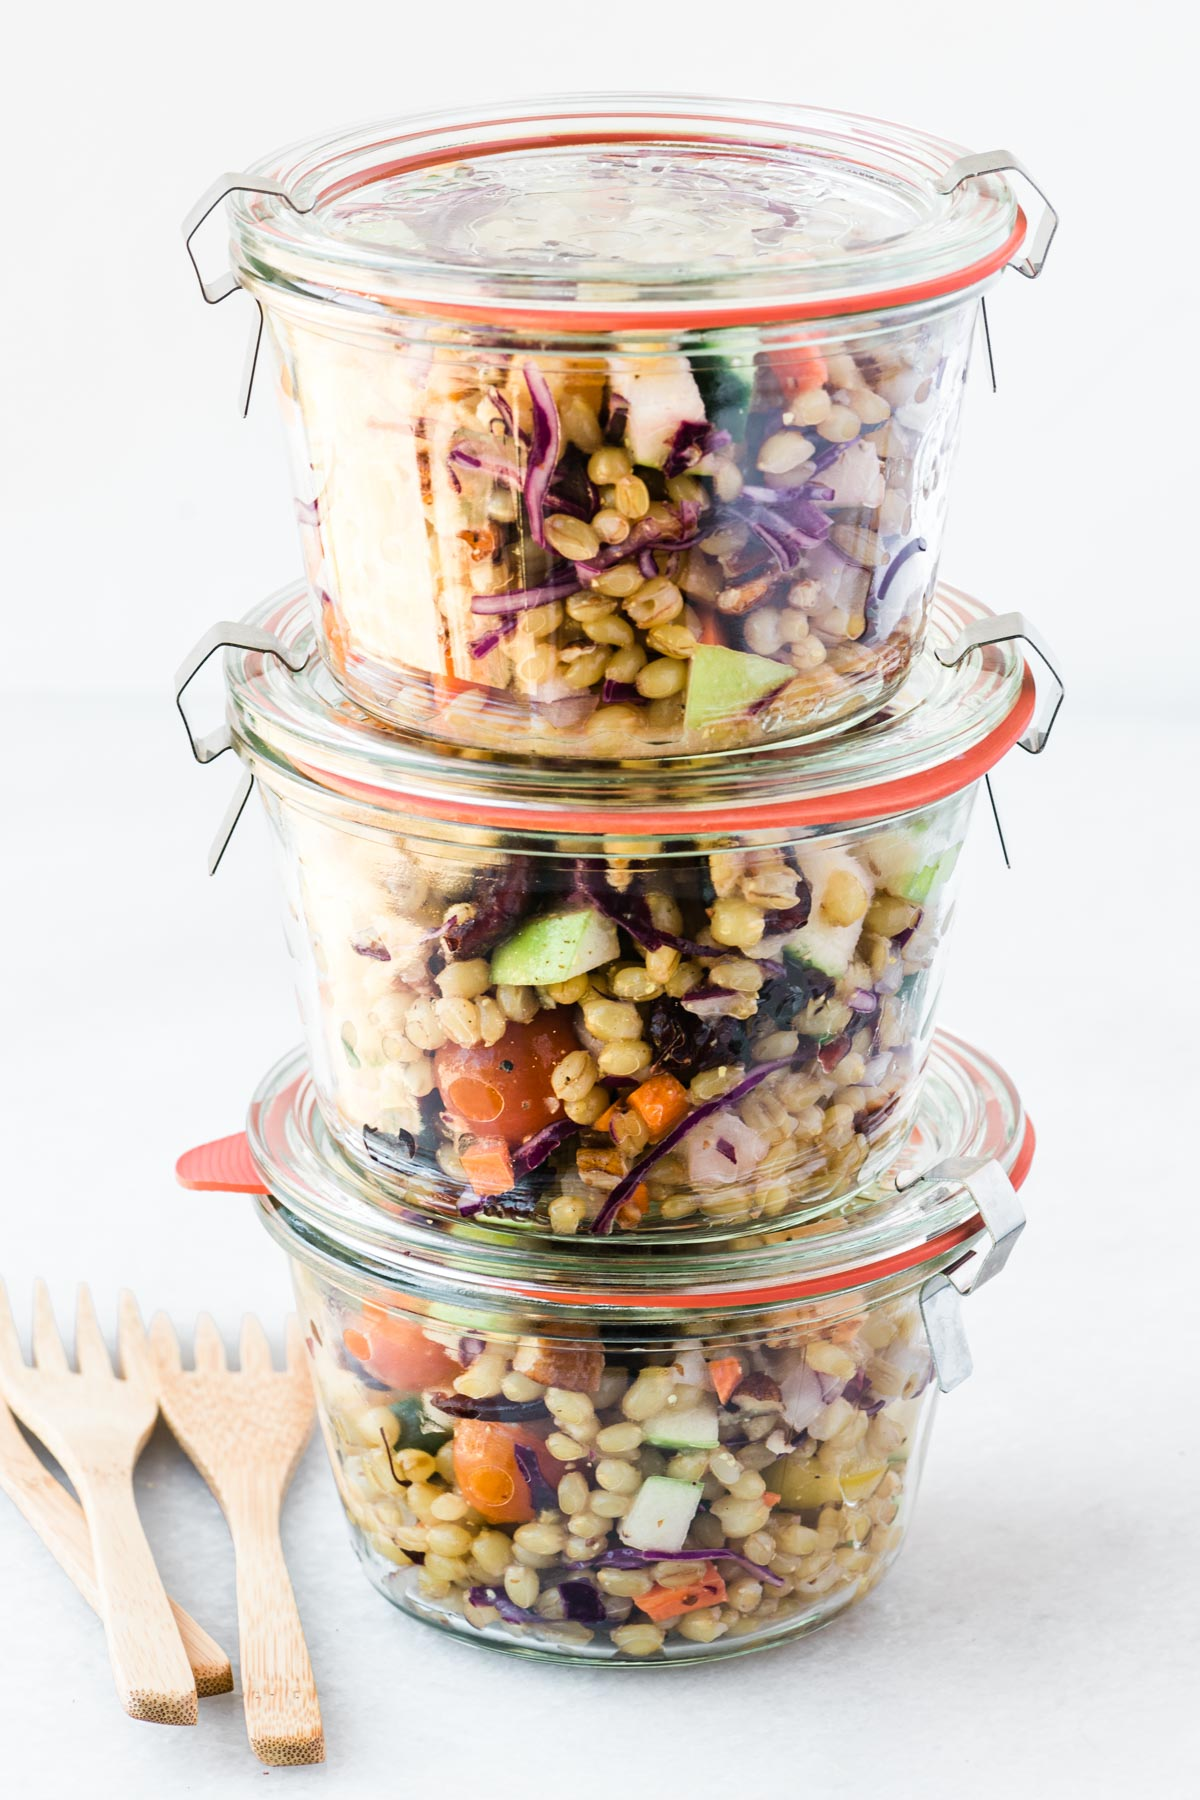 Wheat berry salad in glass jars